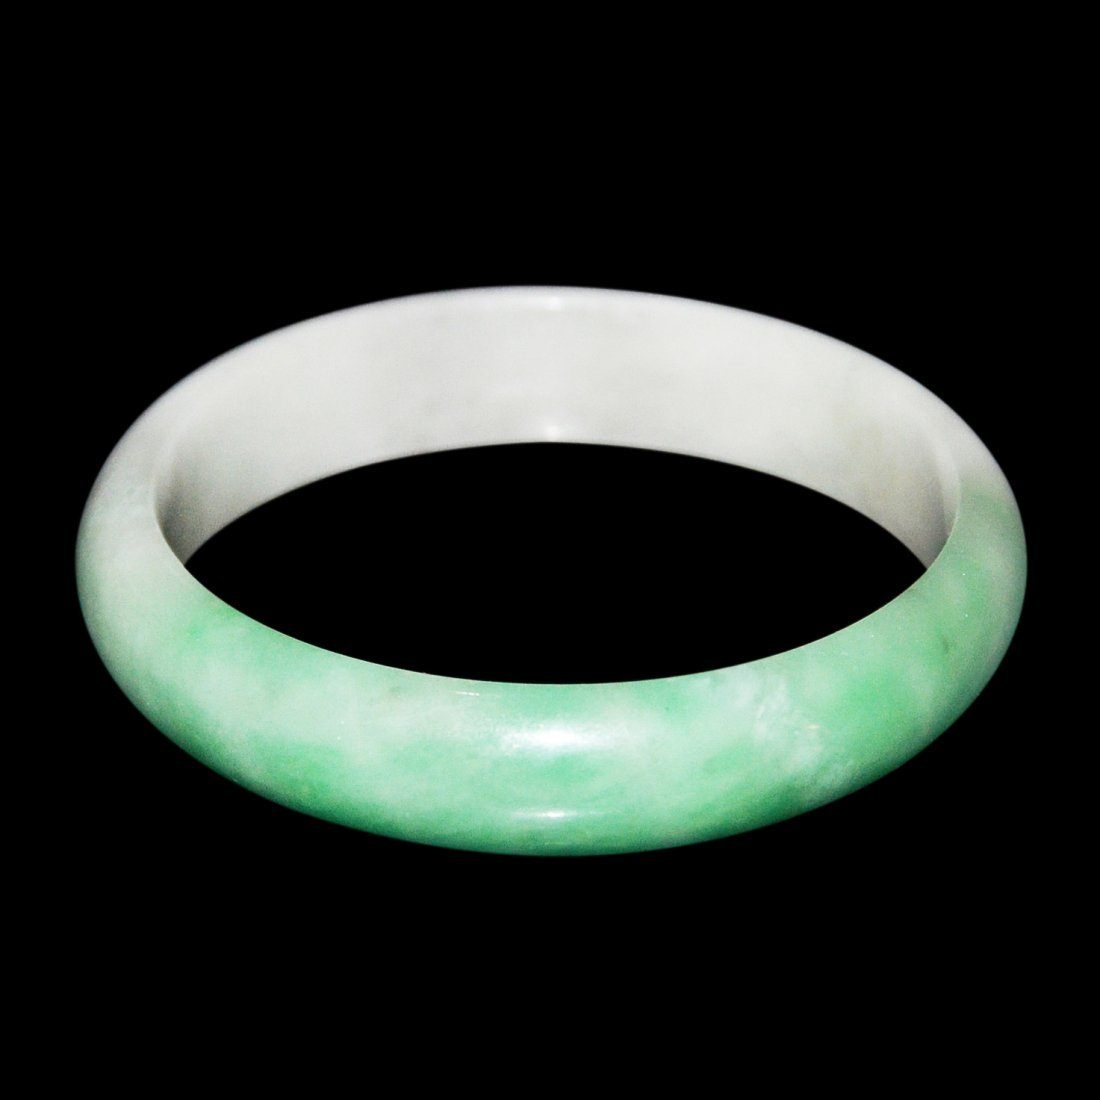 Glass Jadeite Bracelet with Green Patches - 4